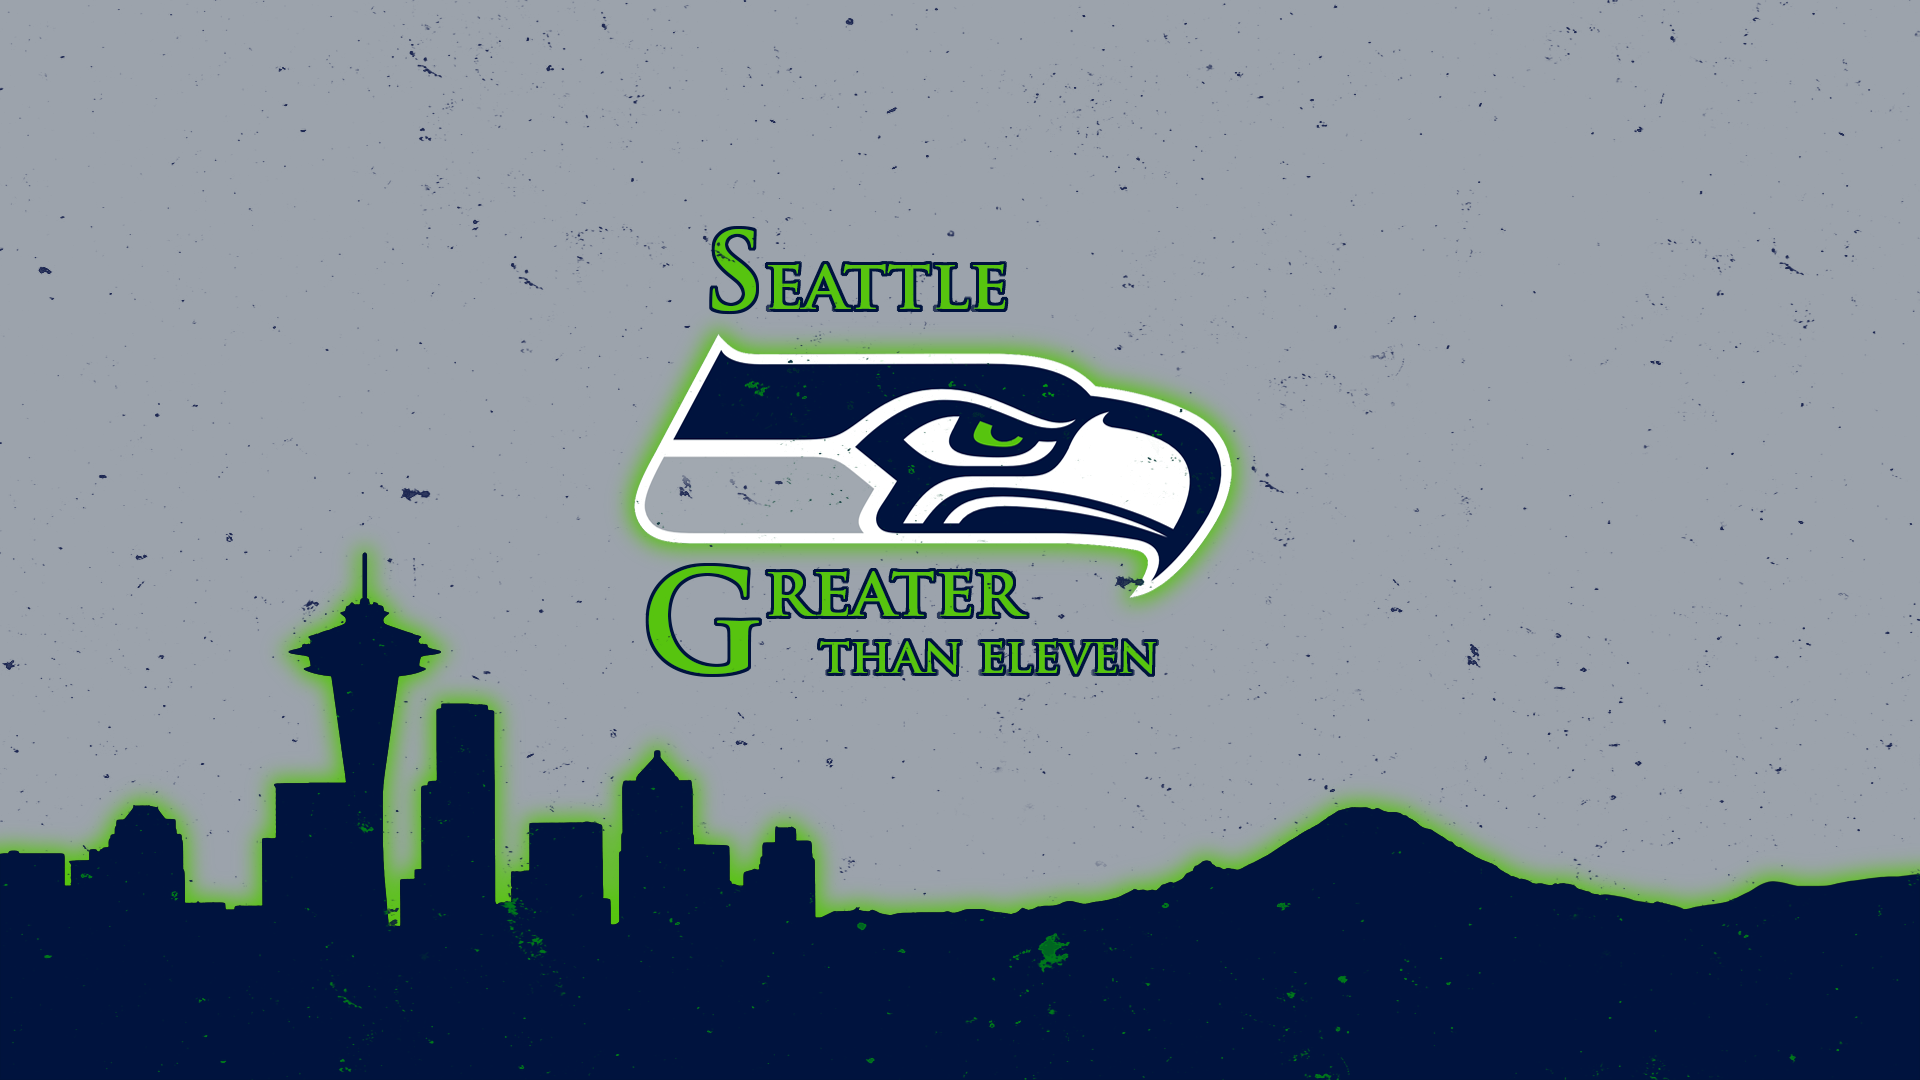 2013 seattle seahawks nfl football y wallpaper 1920x1080 2013 seattle seahawks nfl football y wallpaper 1920x1080 149799 wallpaperup voltagebd Image collections